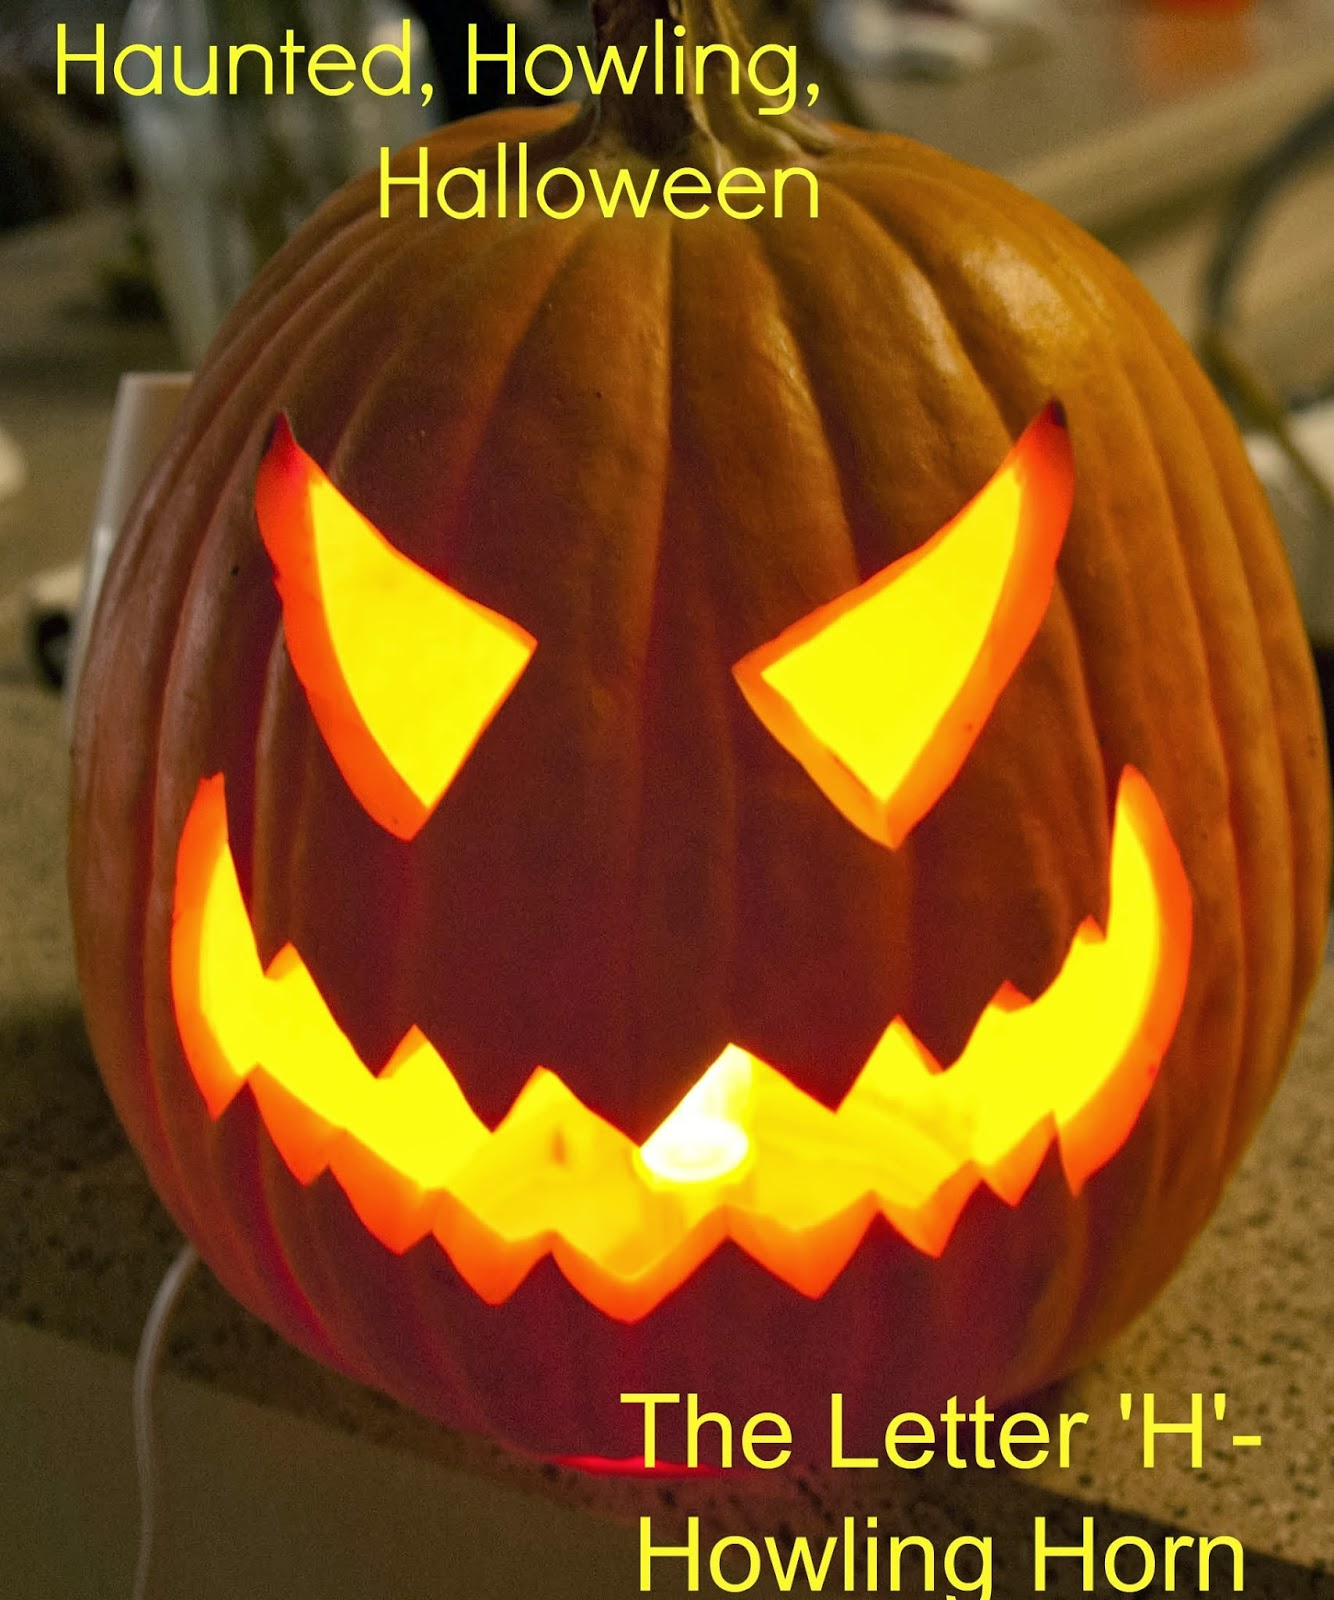 Howling Horn Haunted Howling Halloween Letter H